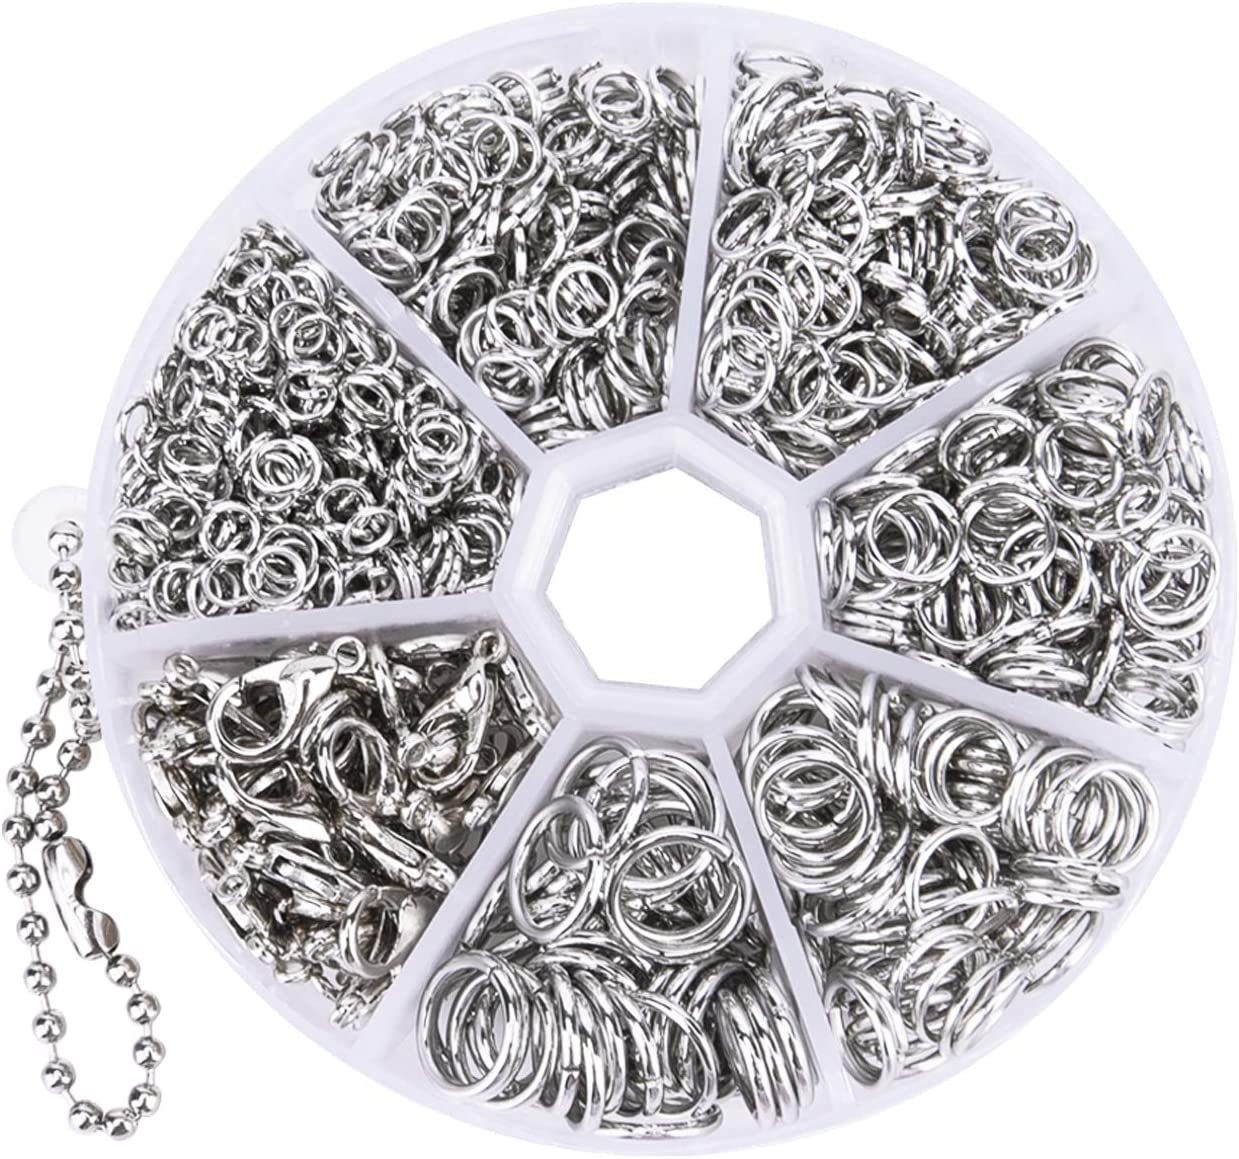 Livder 1210 Pieces Jump Rings with Lobster Clasps for Jewelry Making Finding and Necklace Earring Repair (Silvery)